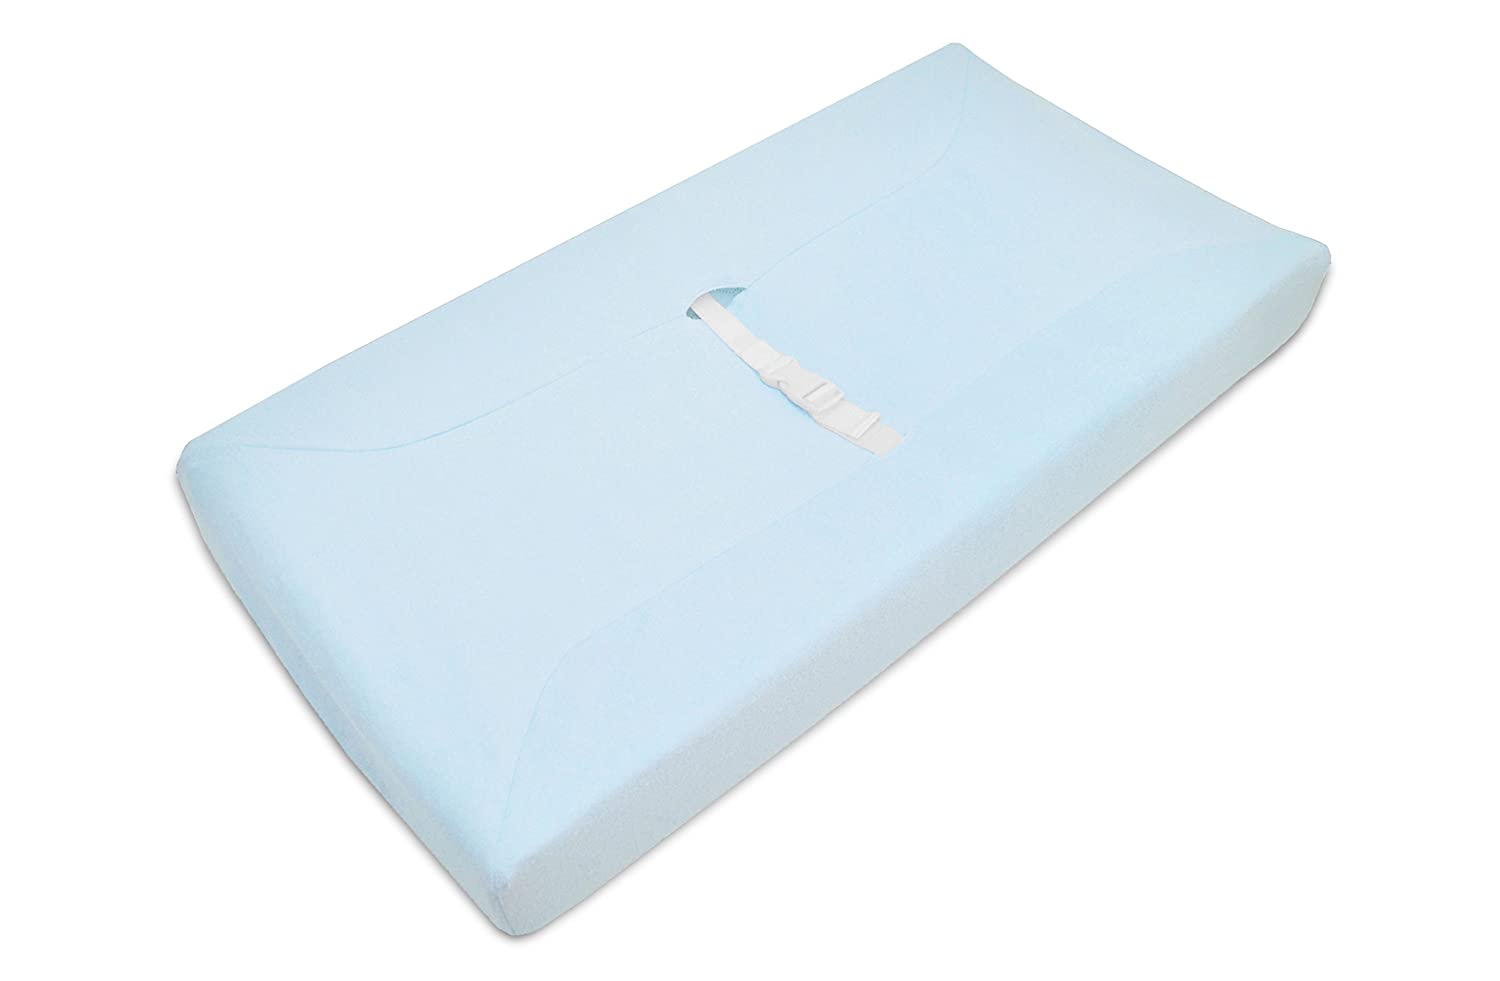 American Baby Company Cotton Terry Contoured Changing Table Cover, Blue (Older Version) (Discontinued by Manufacturer)